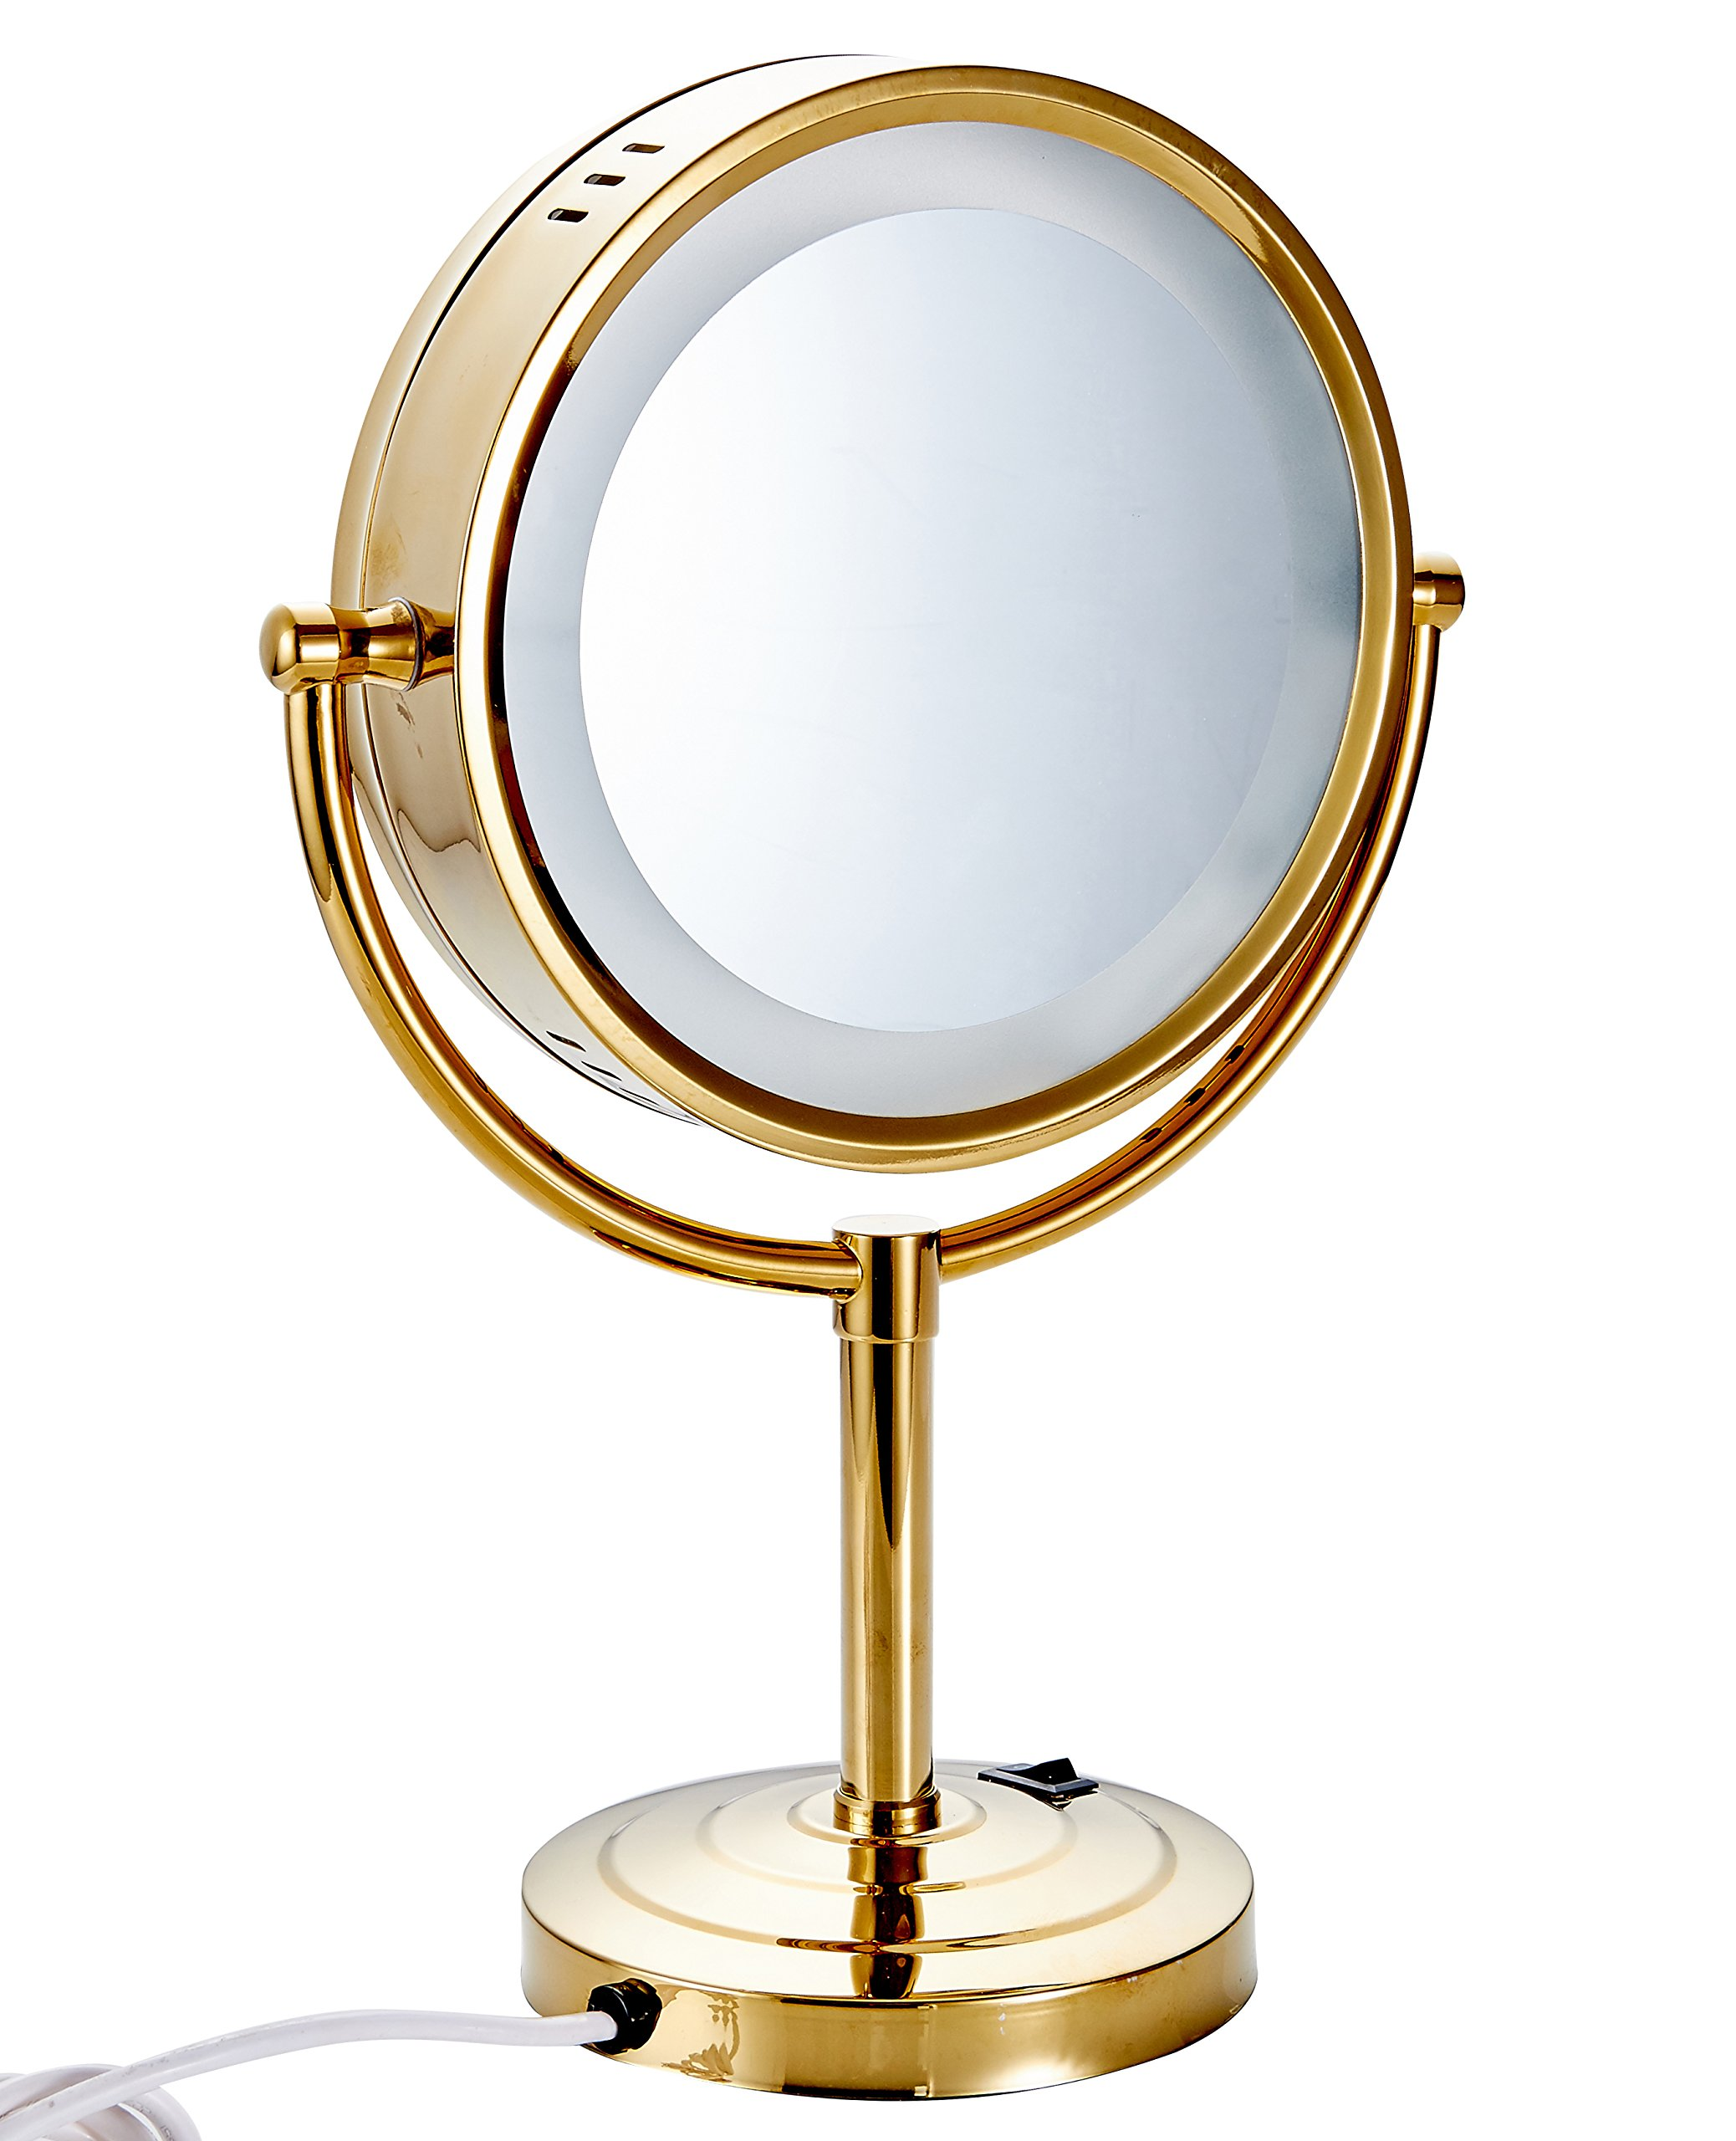 Cavoli 8.5 inch LED Makeup Mirror with 7x Magnification,Extendable Bathroom Mirror,Tabletop Two-sided,Gold Finish(8.5in,7x)